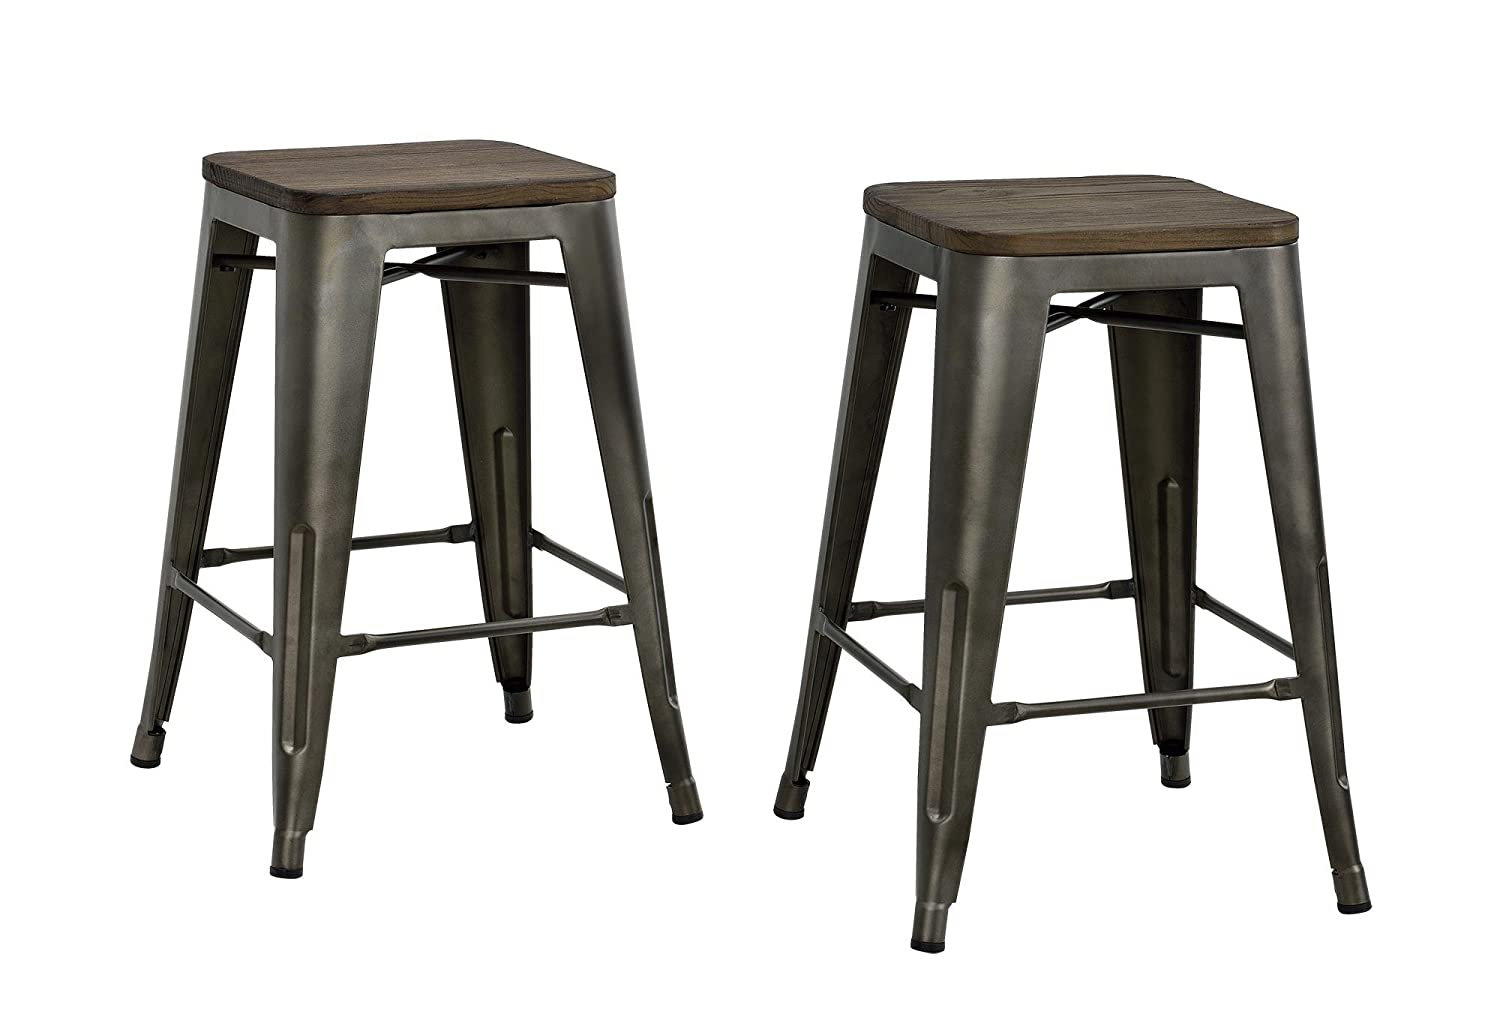 Amazon.com: DHP Fusion Metal Backless Counter Stool with Wood Seat ...